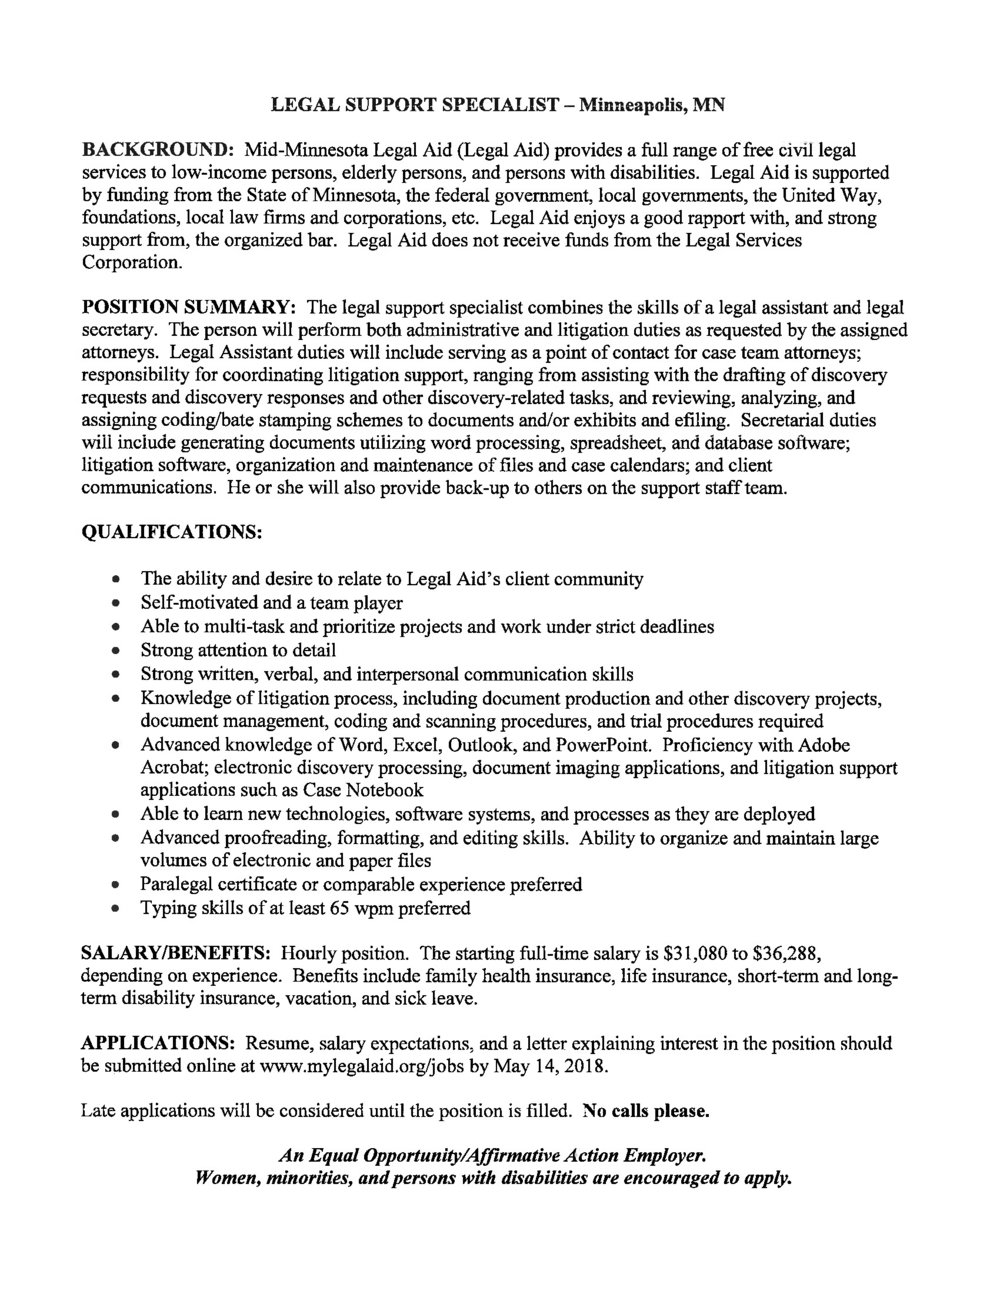 Legal Support Specialist Job Posting.jpg